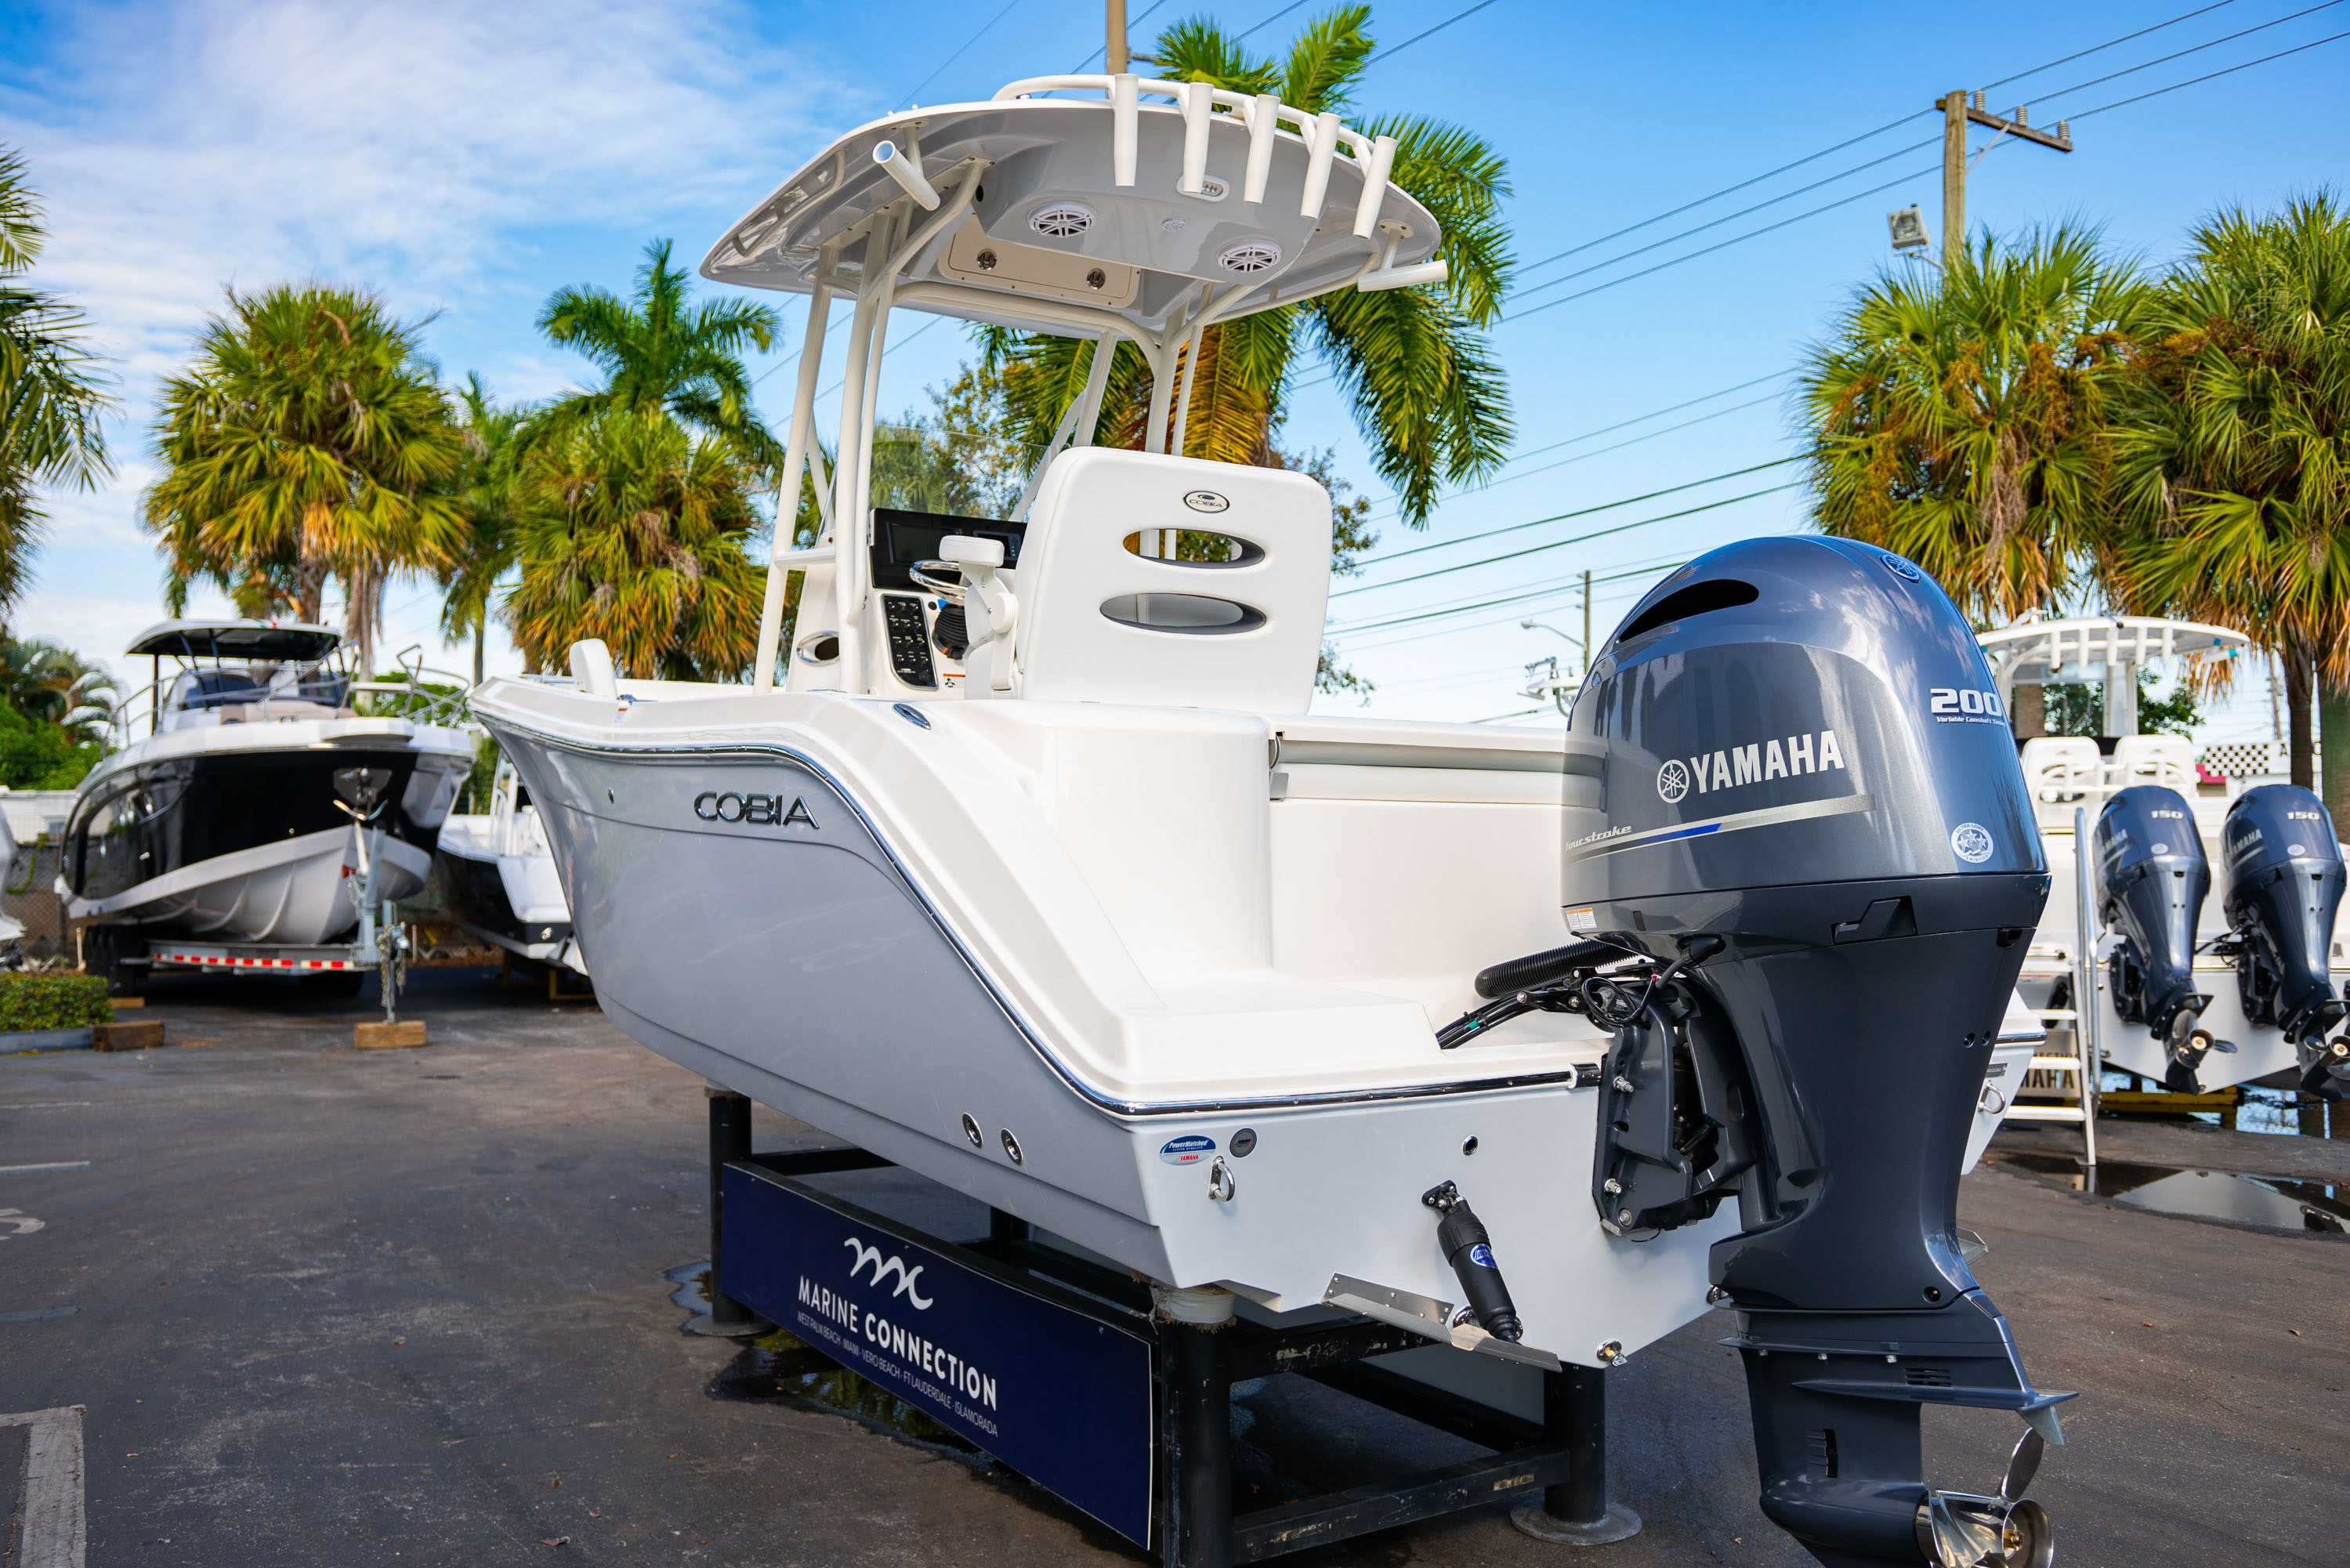 Thumbnail 5 for New 2020 Cobia 220 CC boat for sale in West Palm Beach, FL